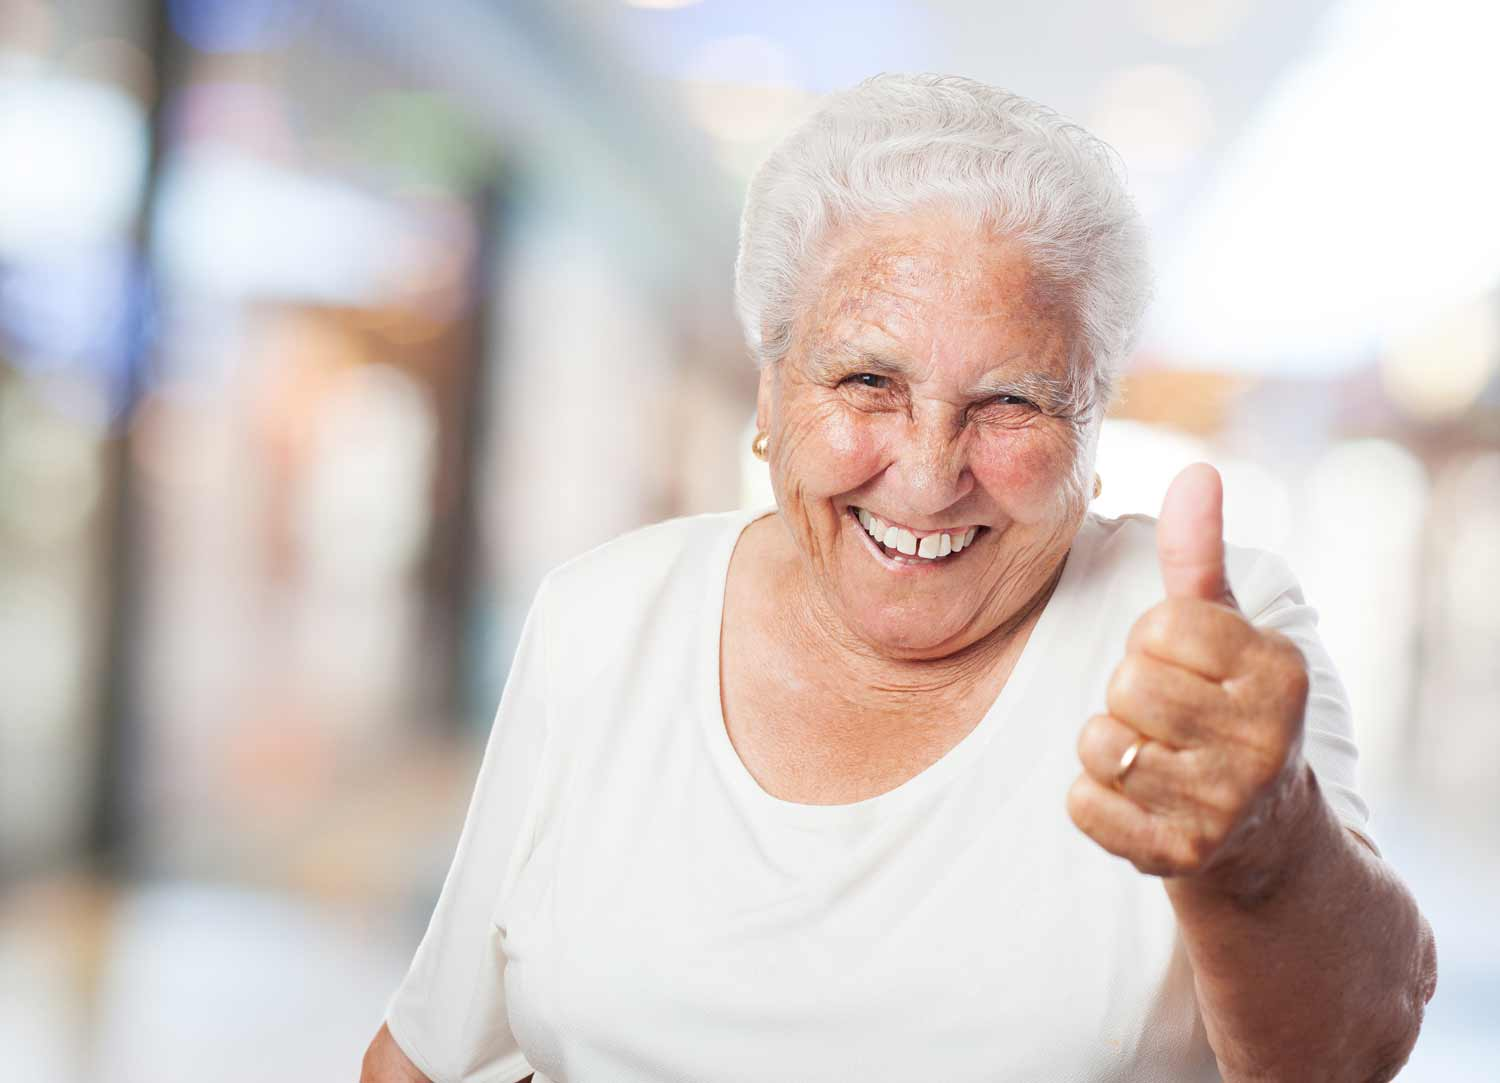 Parade House Activities - Thumbs-up for Parade House Residential Home, Monmouth